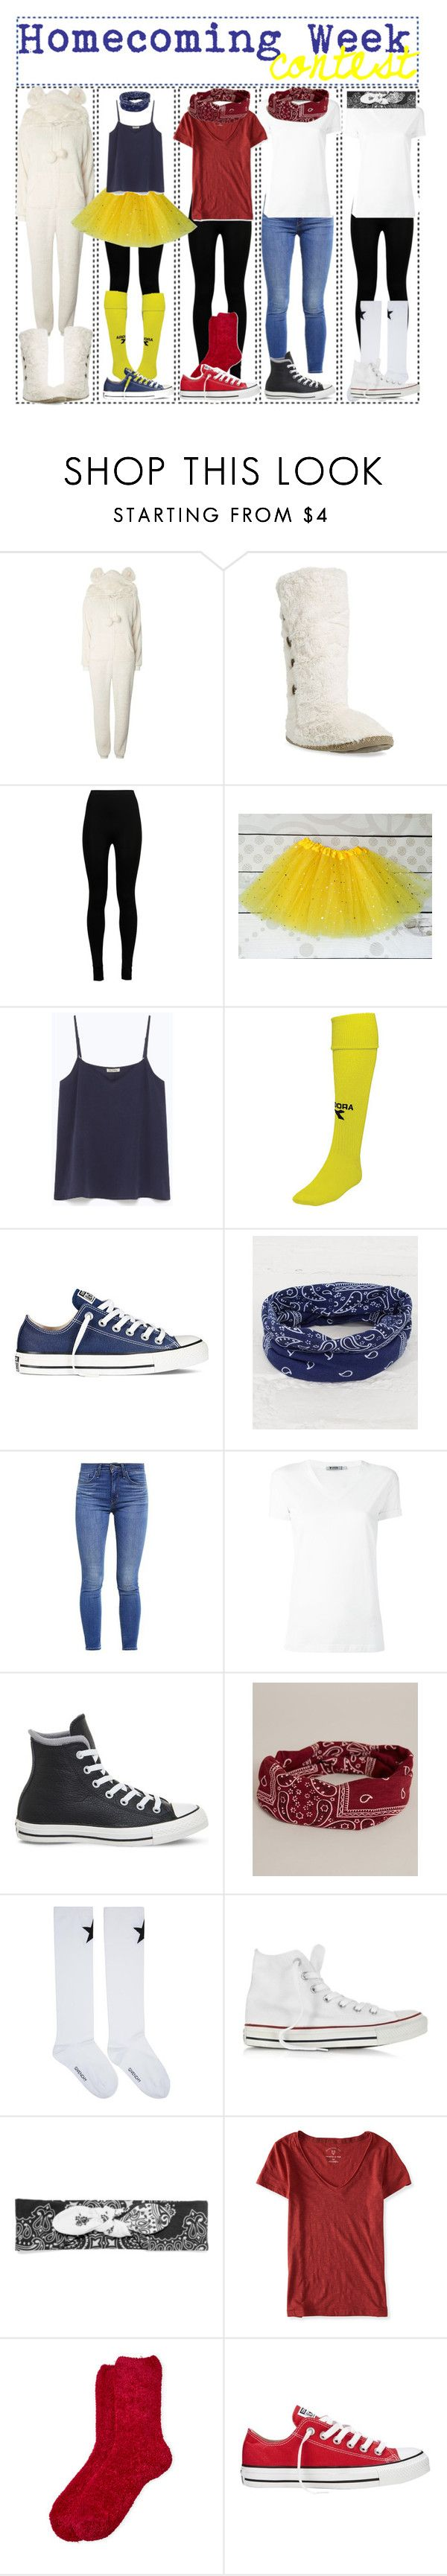 """""""{Homecoming Week Contest}"""" by star-lit-fashion ❤ liked on Polyvore featuring Dorothy Perkins, Bedroom Athletics, Wolford, American Vintage, Diadora, Converse, BKE, Levi's, T By Alexander Wang and Givenchy"""